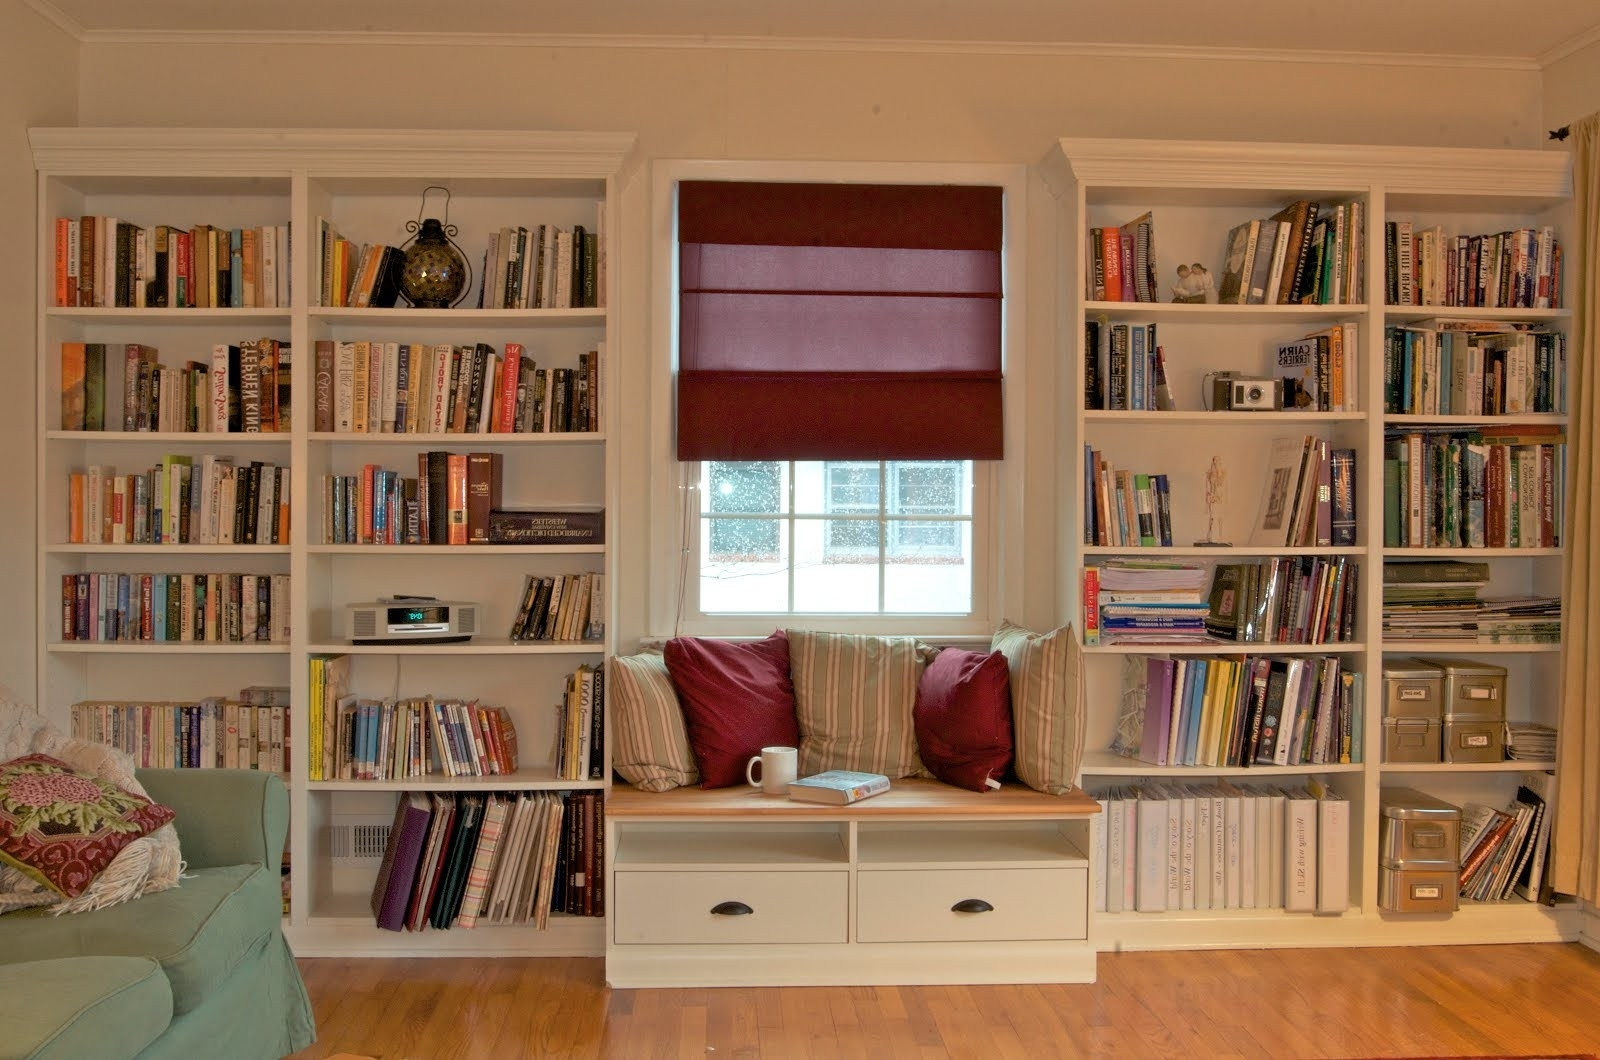 Under Window Bookcases Within Fashionable Built In Bookshelves With Window Seat For Under $350 – Ikea Hackers (View 3 of 15)